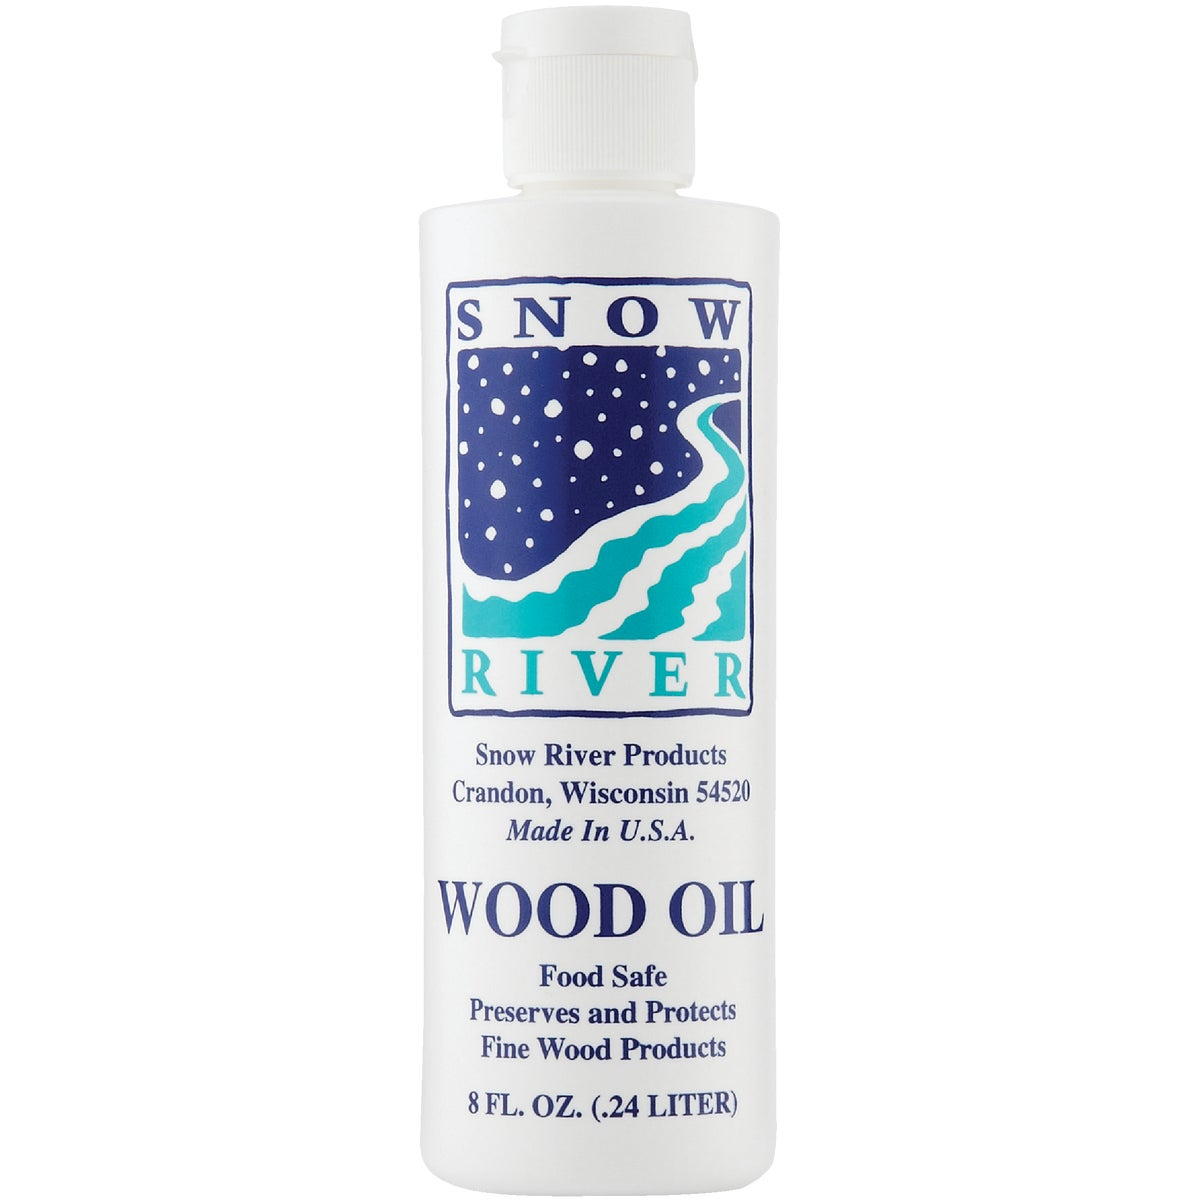 8OZ WOOD CONDITIONER - 7V03389 by Snow River Products